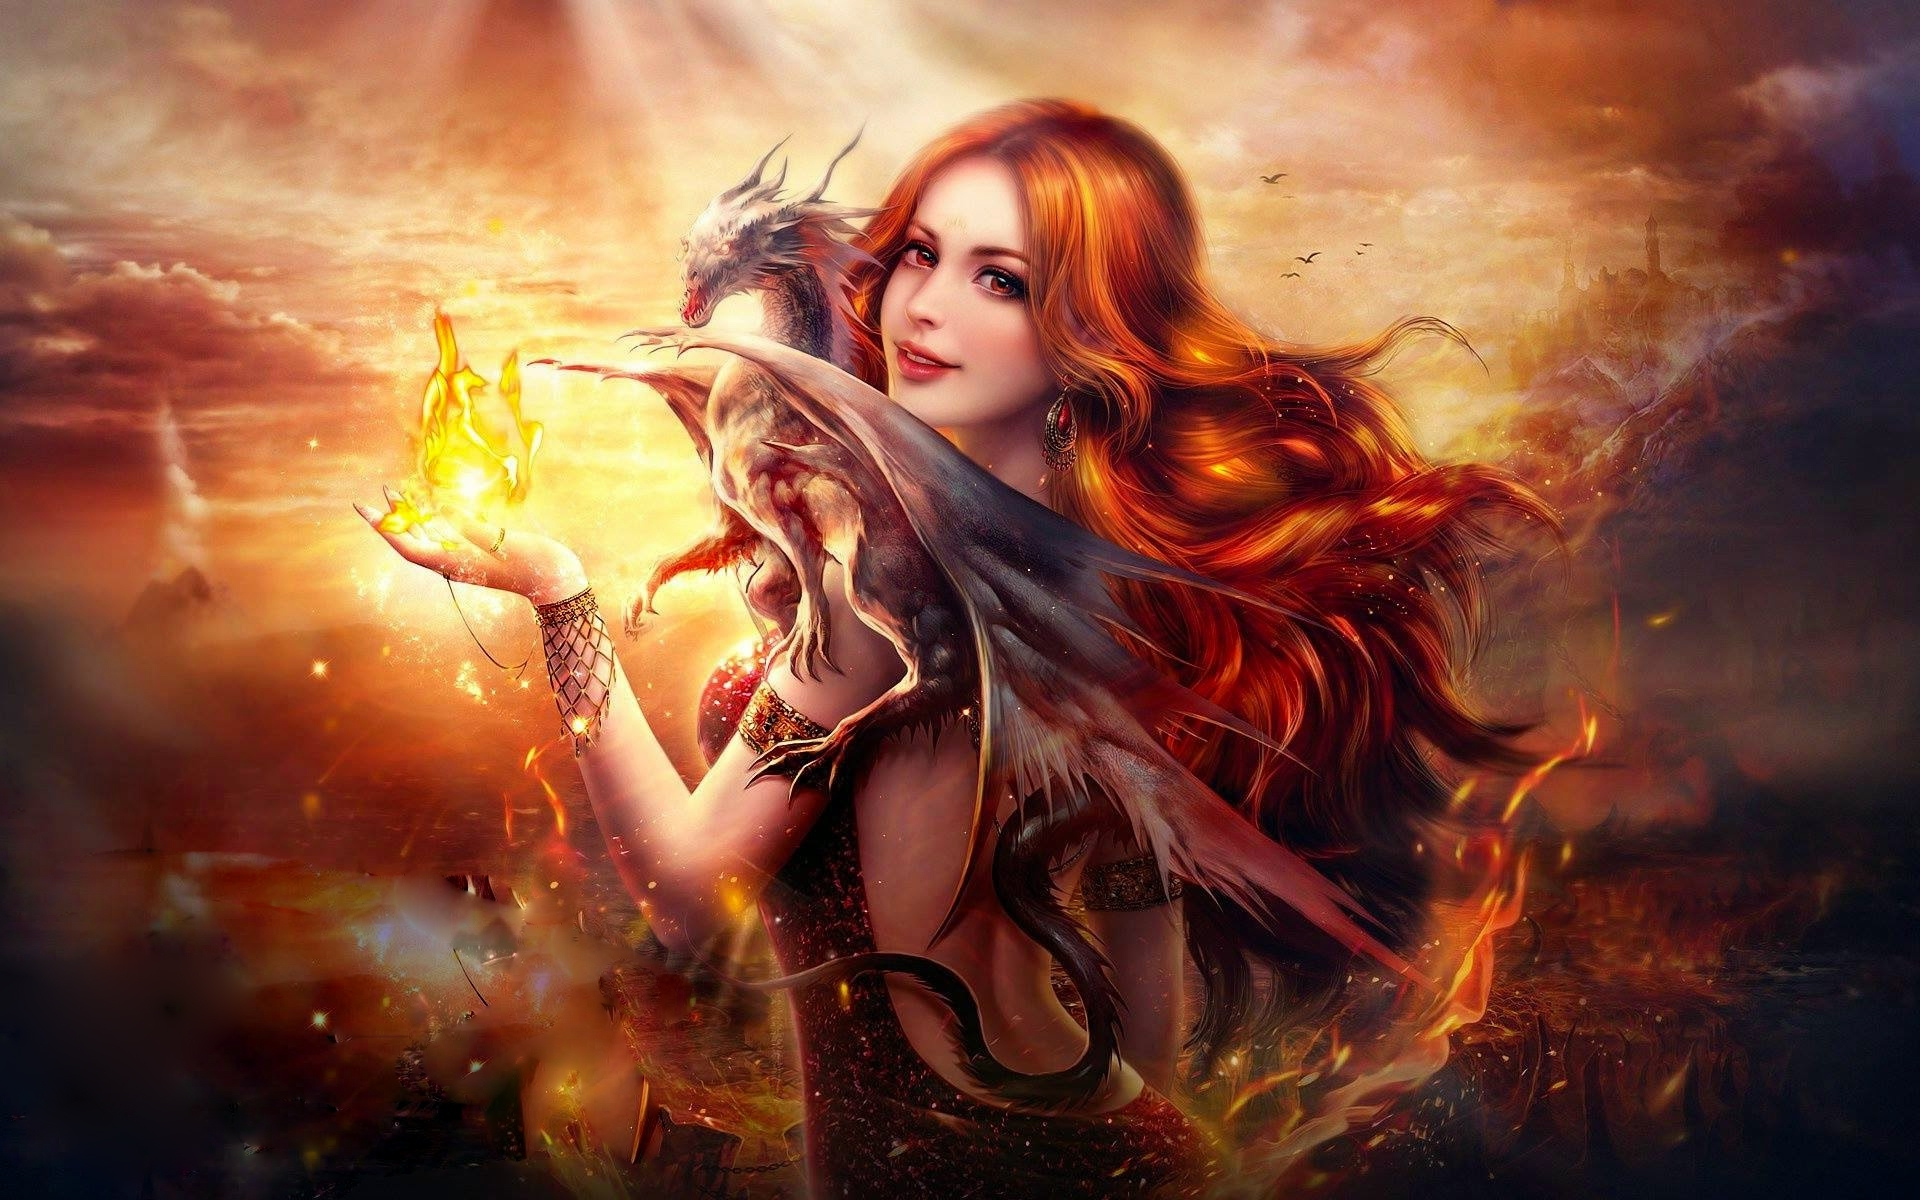 Dragon Fire Fantasy Girl wallpaper